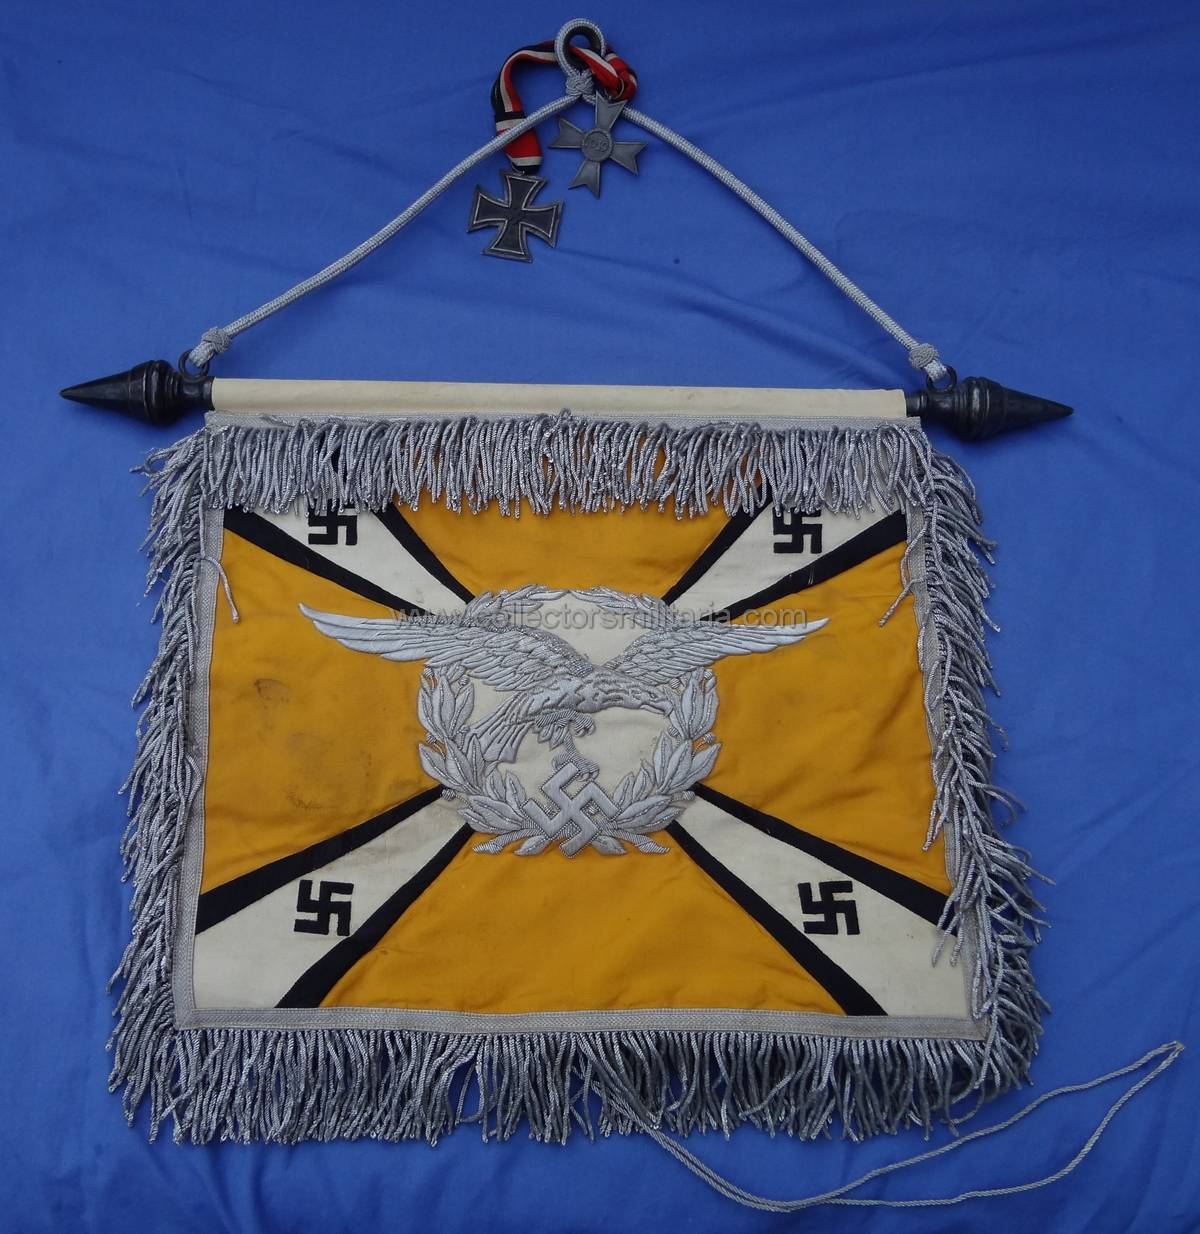 Luftwaffe Flight Regiment Schellenbaum Banner